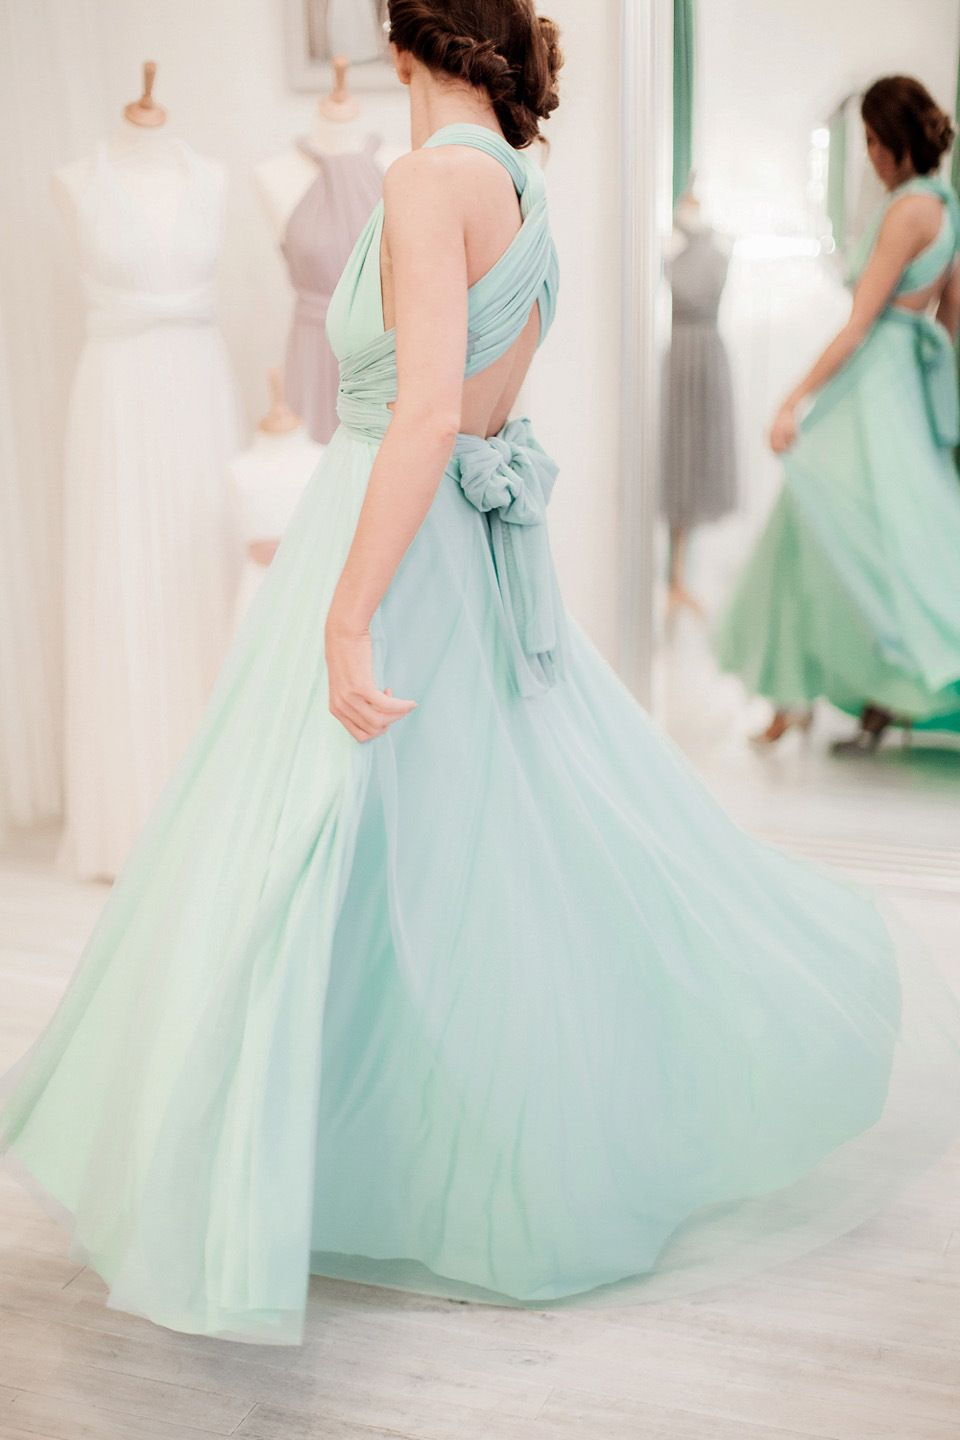 Twobirds bridesmaids launches new tulle collection for spring